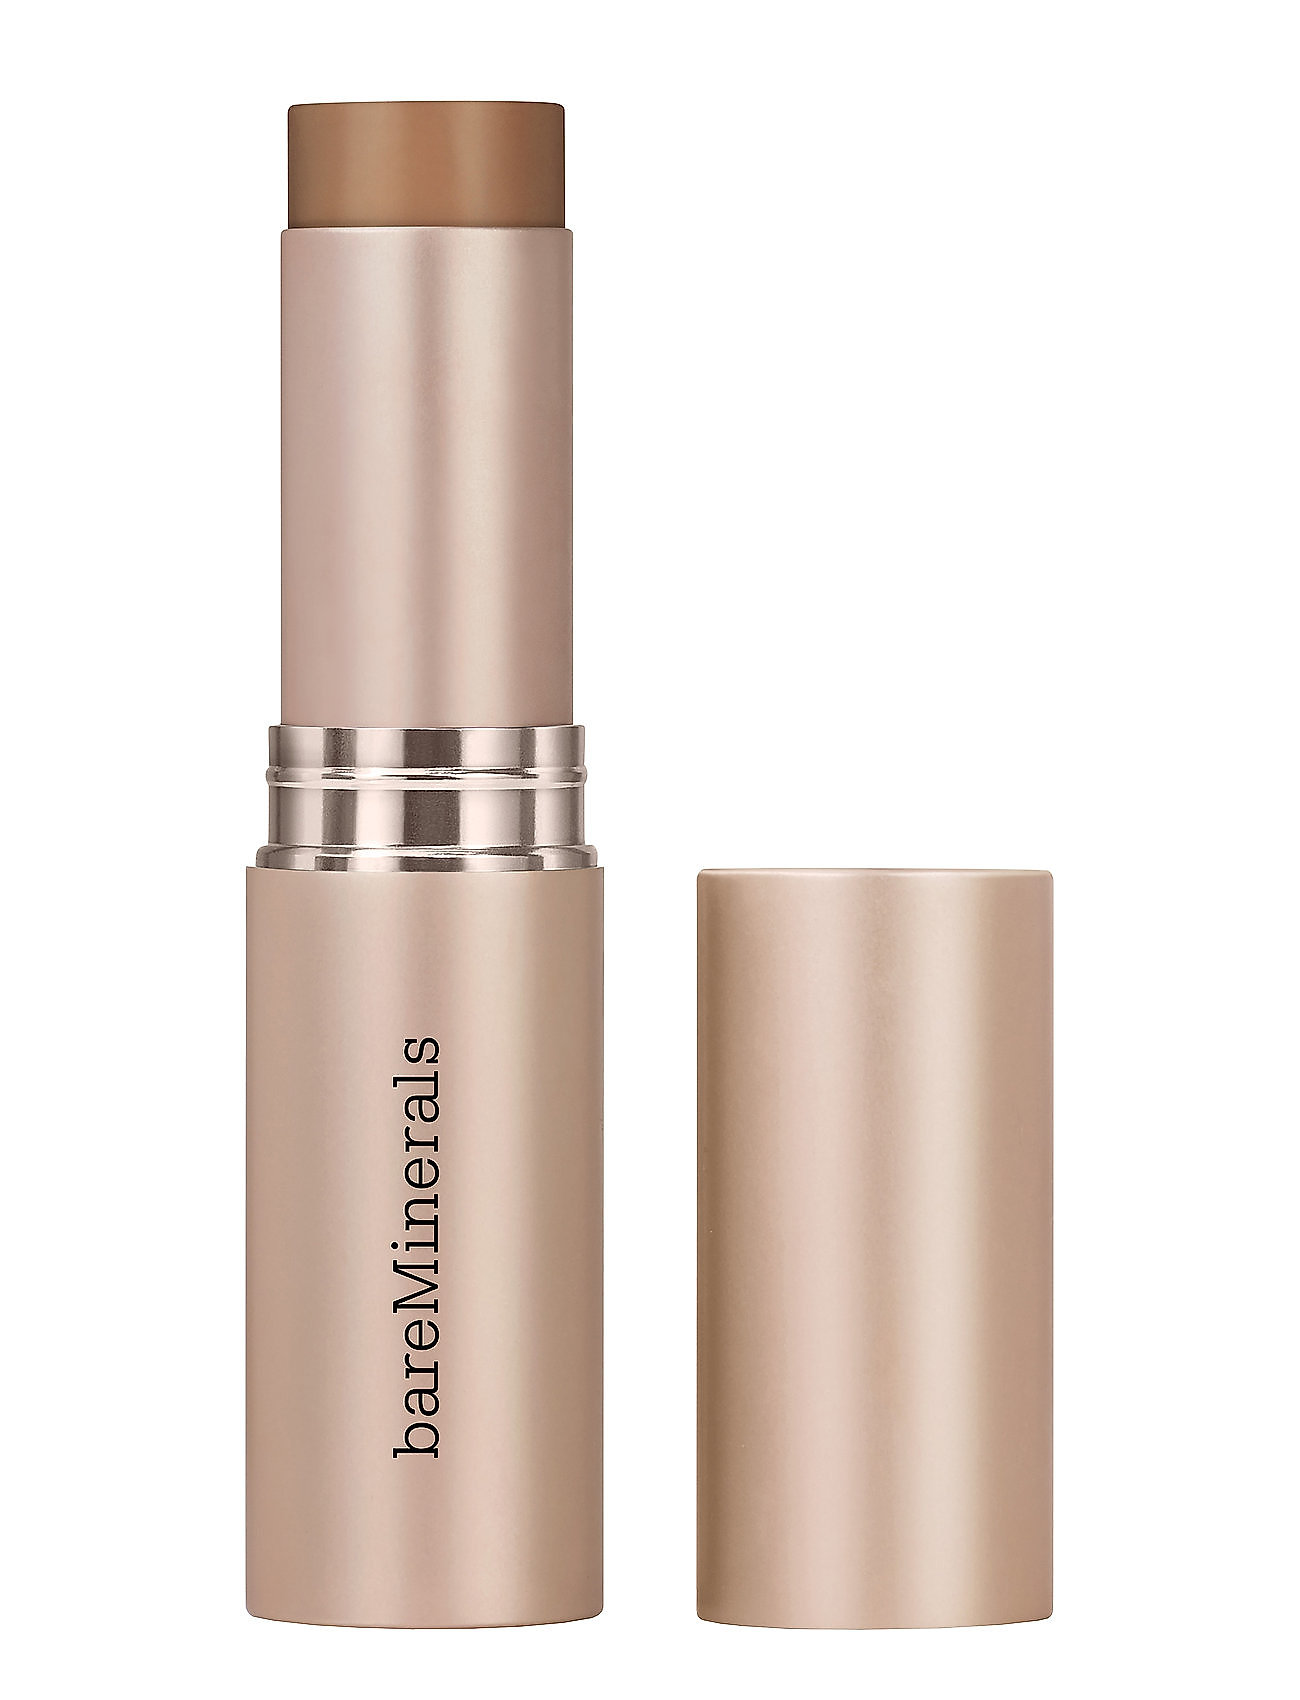 Image of Complexion Rescue Hydrating Foundation Stick Spf 25 Foundation Makeup BareMinerals (3250586911)